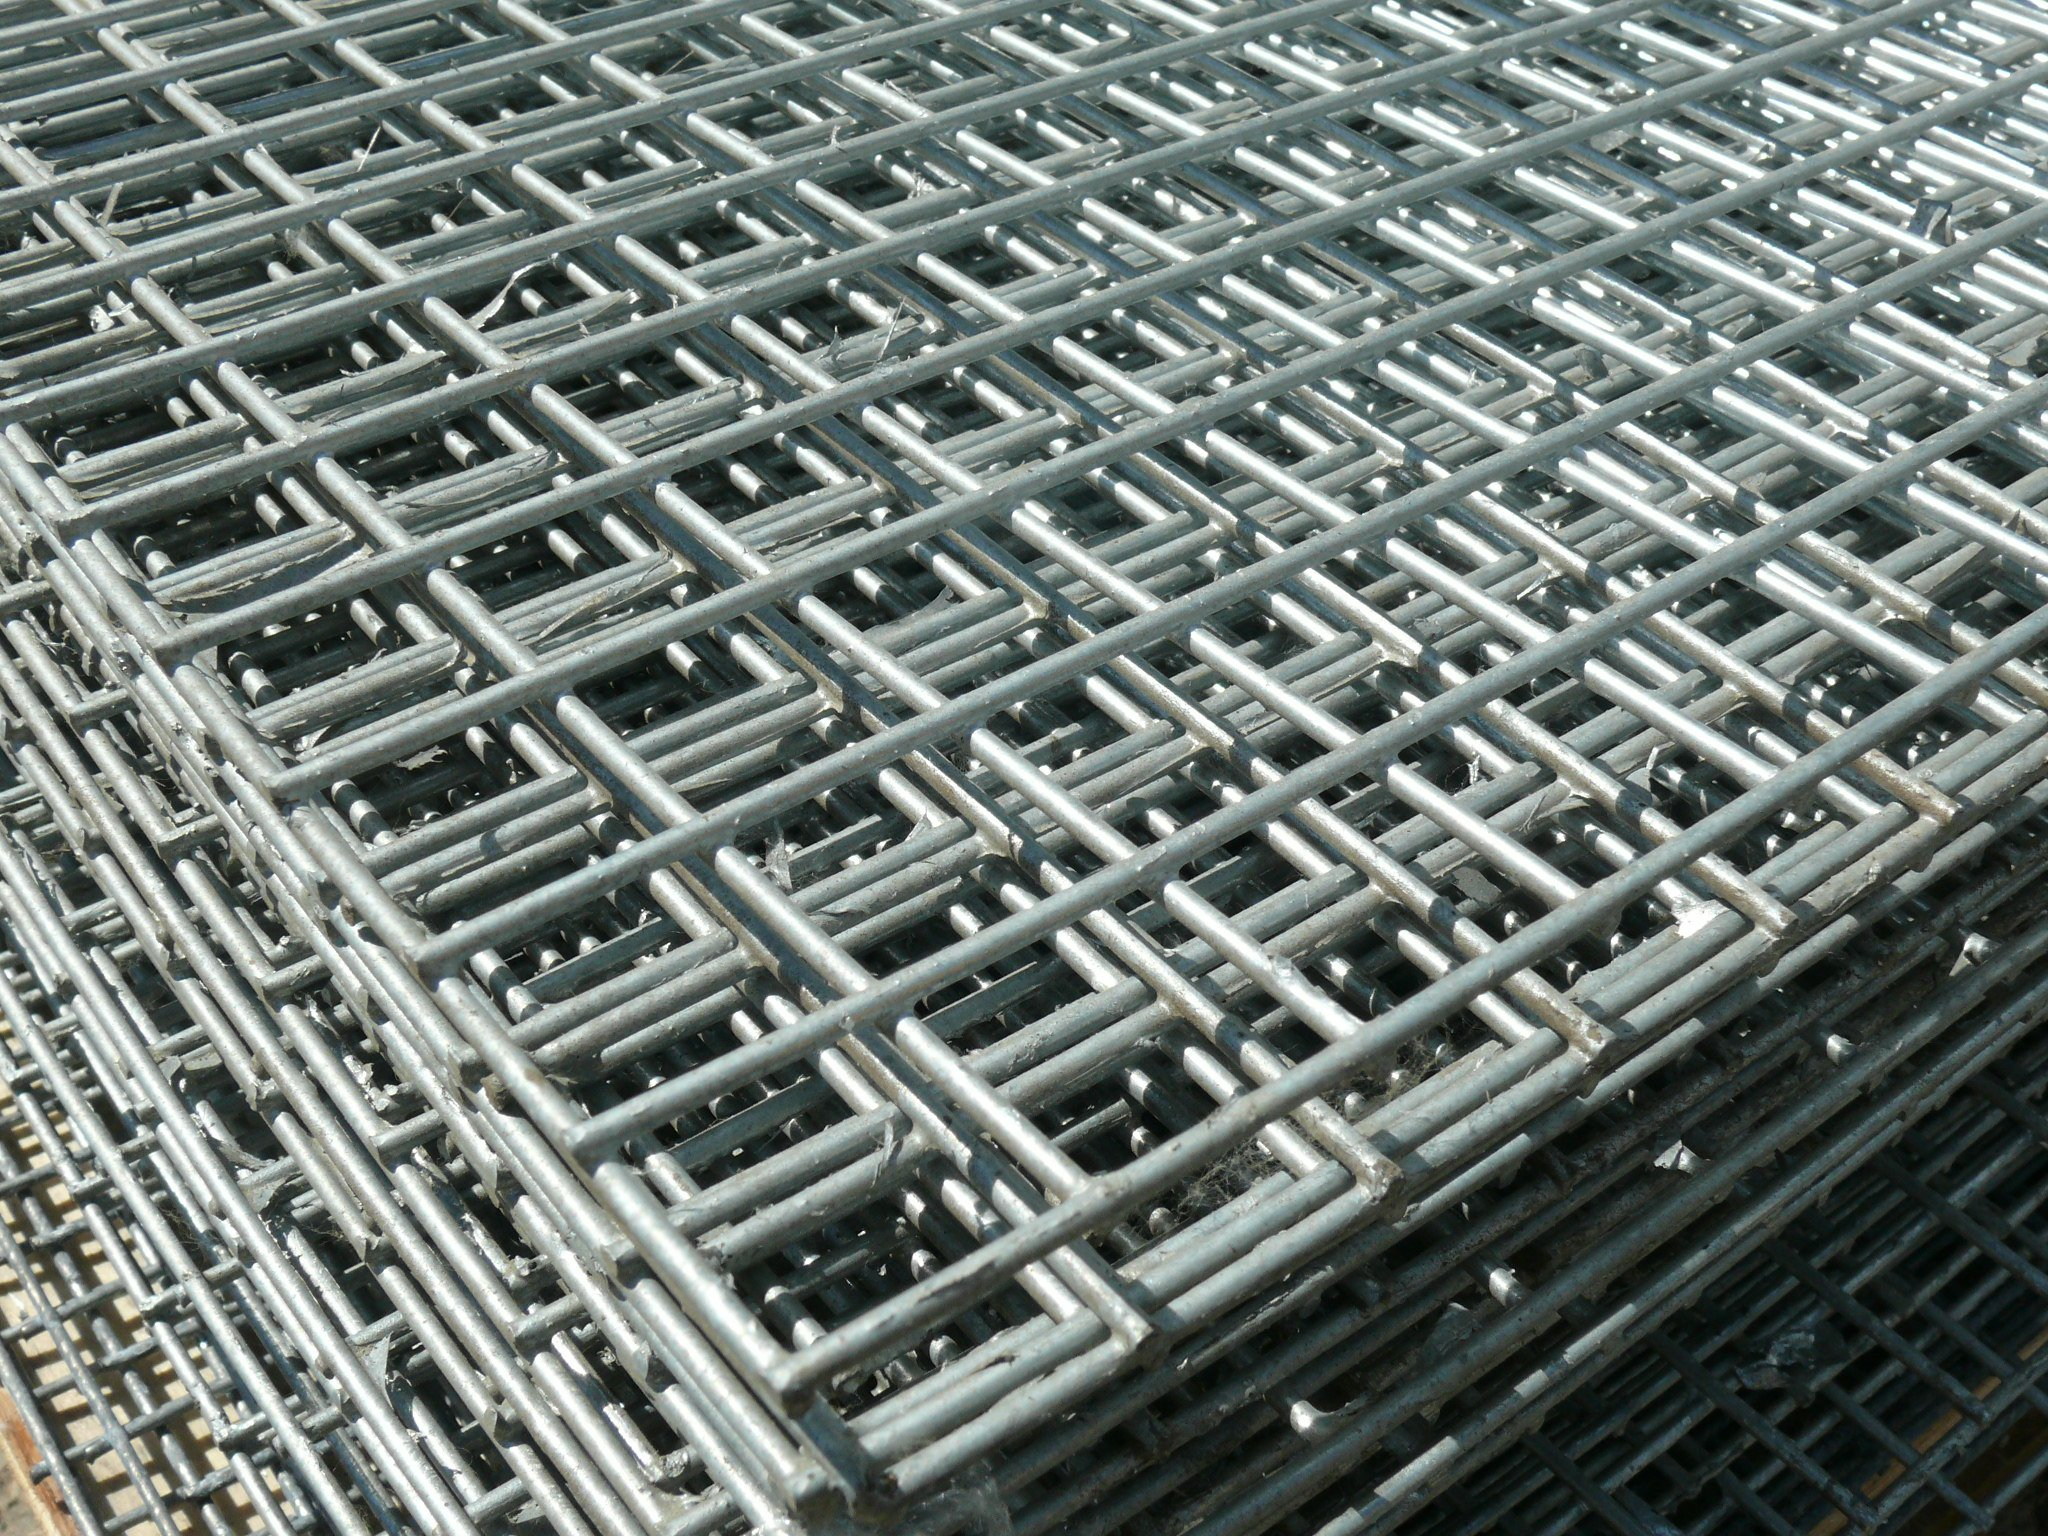 Welded Wire Mesh Panels 1.8x0.9m 6ftx3ft, Galvanise Steel 4 Pack, 12 ...